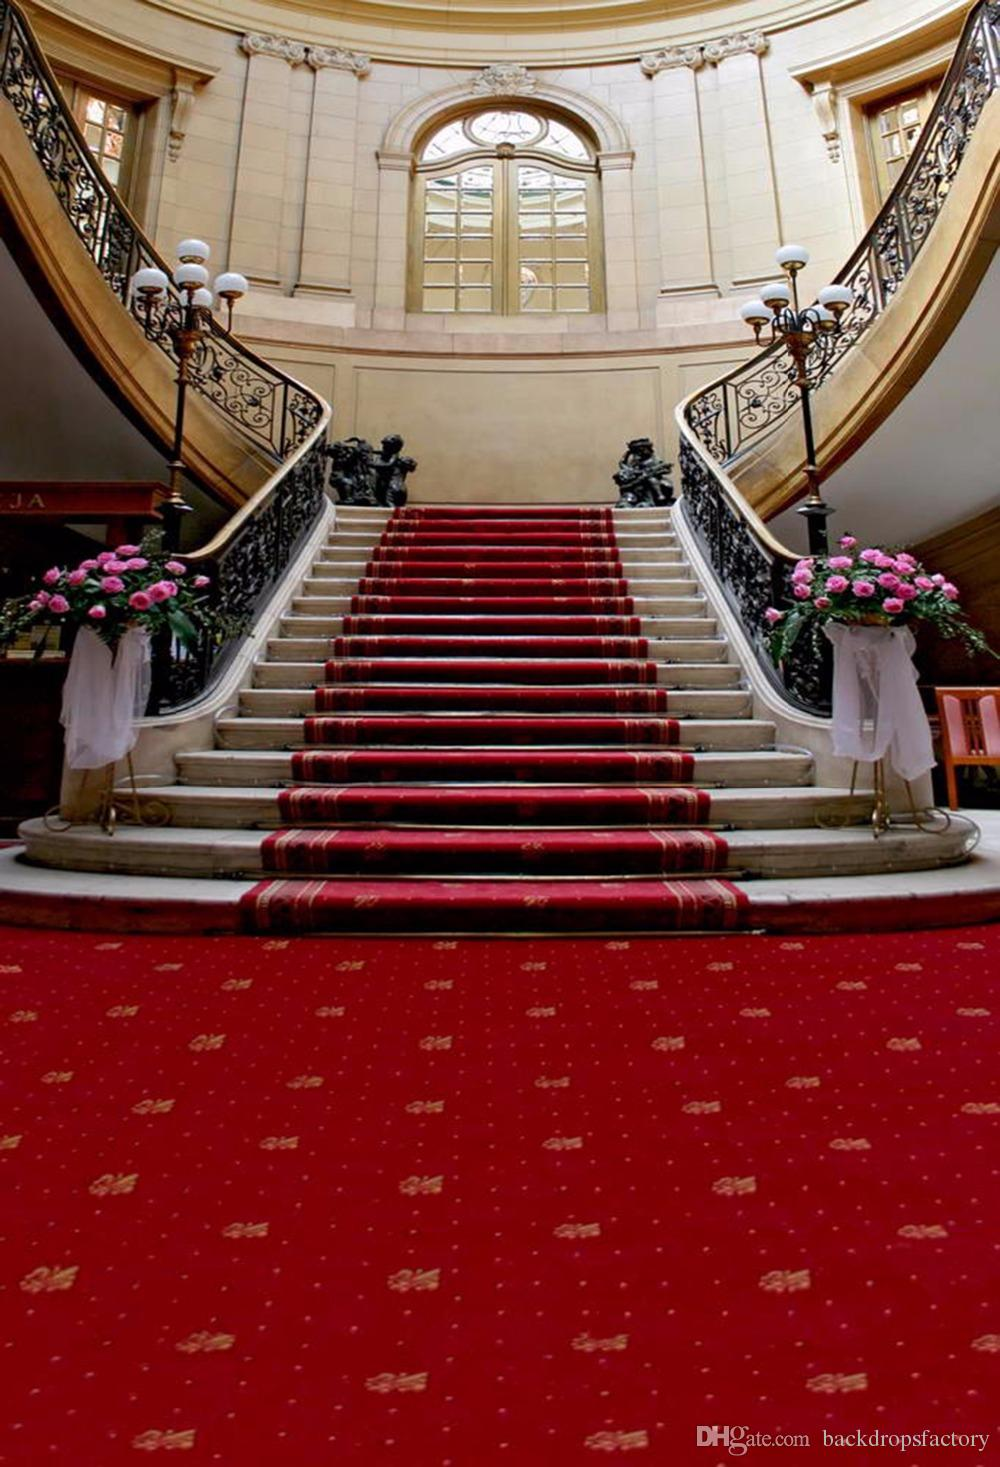 2018 Red Carpet Staircase Wedding Photography Backdrop